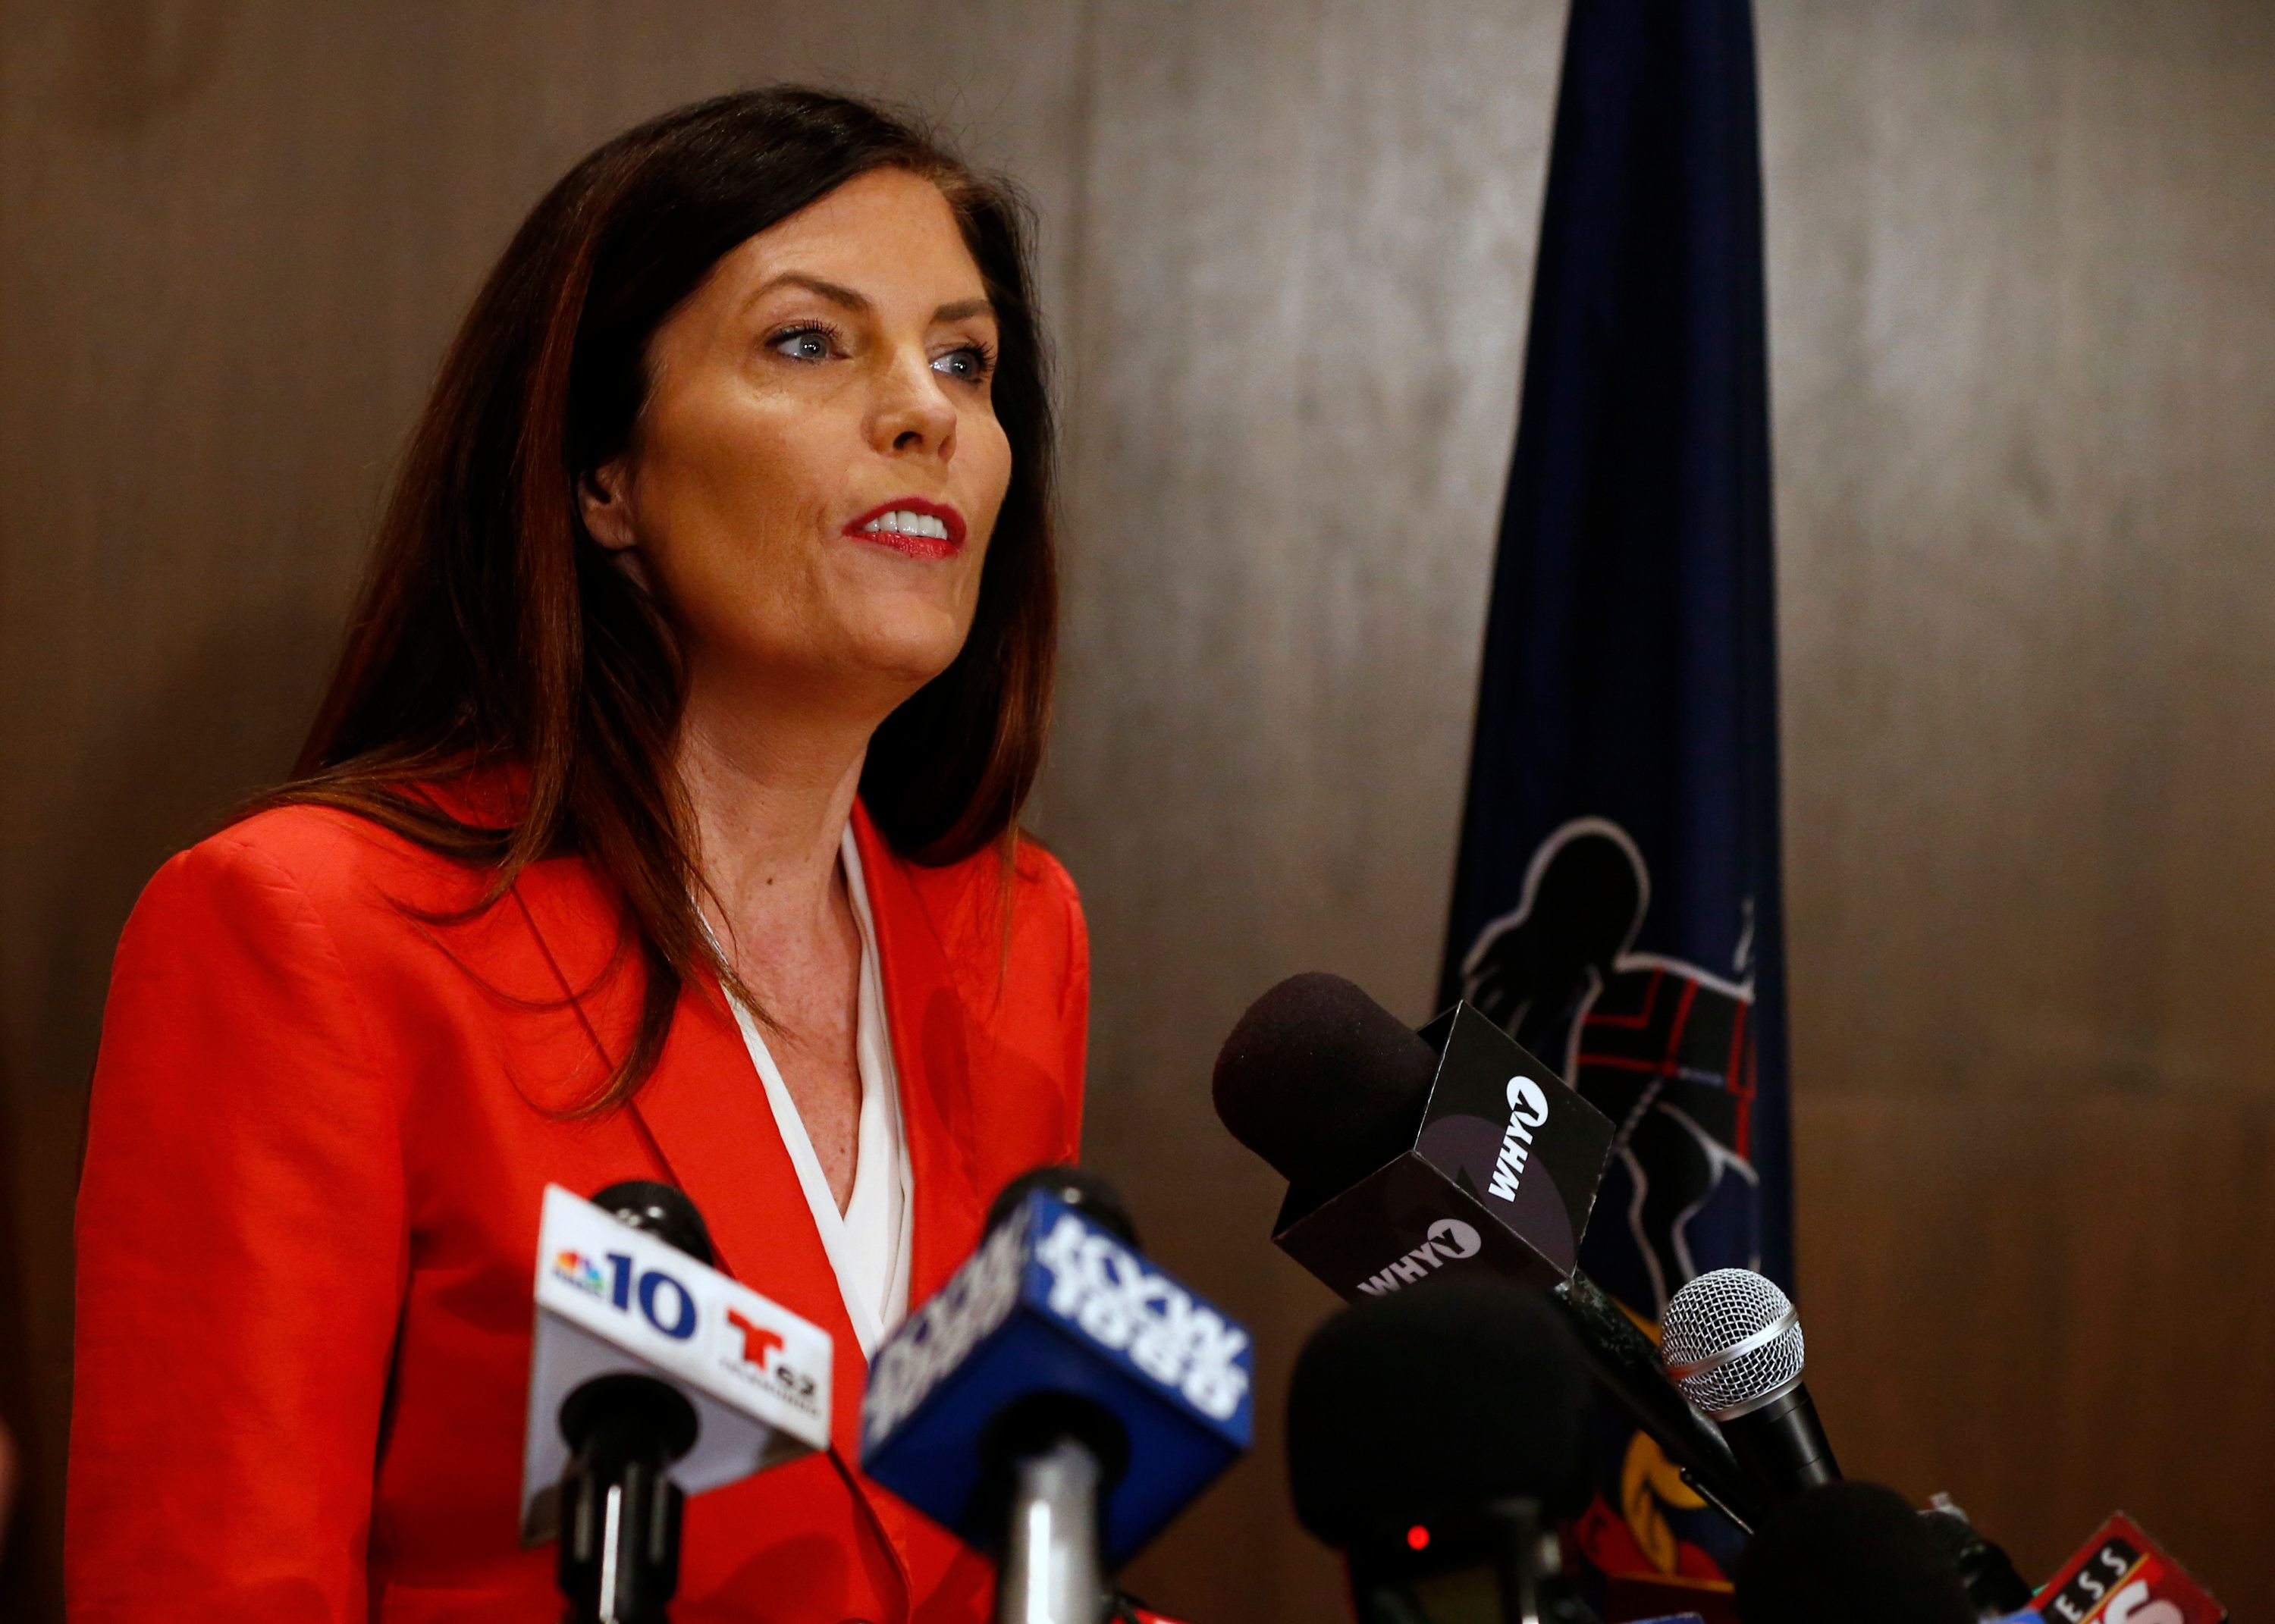 Pennsylvania Attorney General Kathleen Kane speaks during a news conference in Scranton, Pa., Tuesday, Feb. 16, 2016. Kane said she will not seek a second term, facing pressure from within her own party after being hobbled for months by criminal perjury charges and the suspension of her law license. (AP Photo/Rich Schultz)